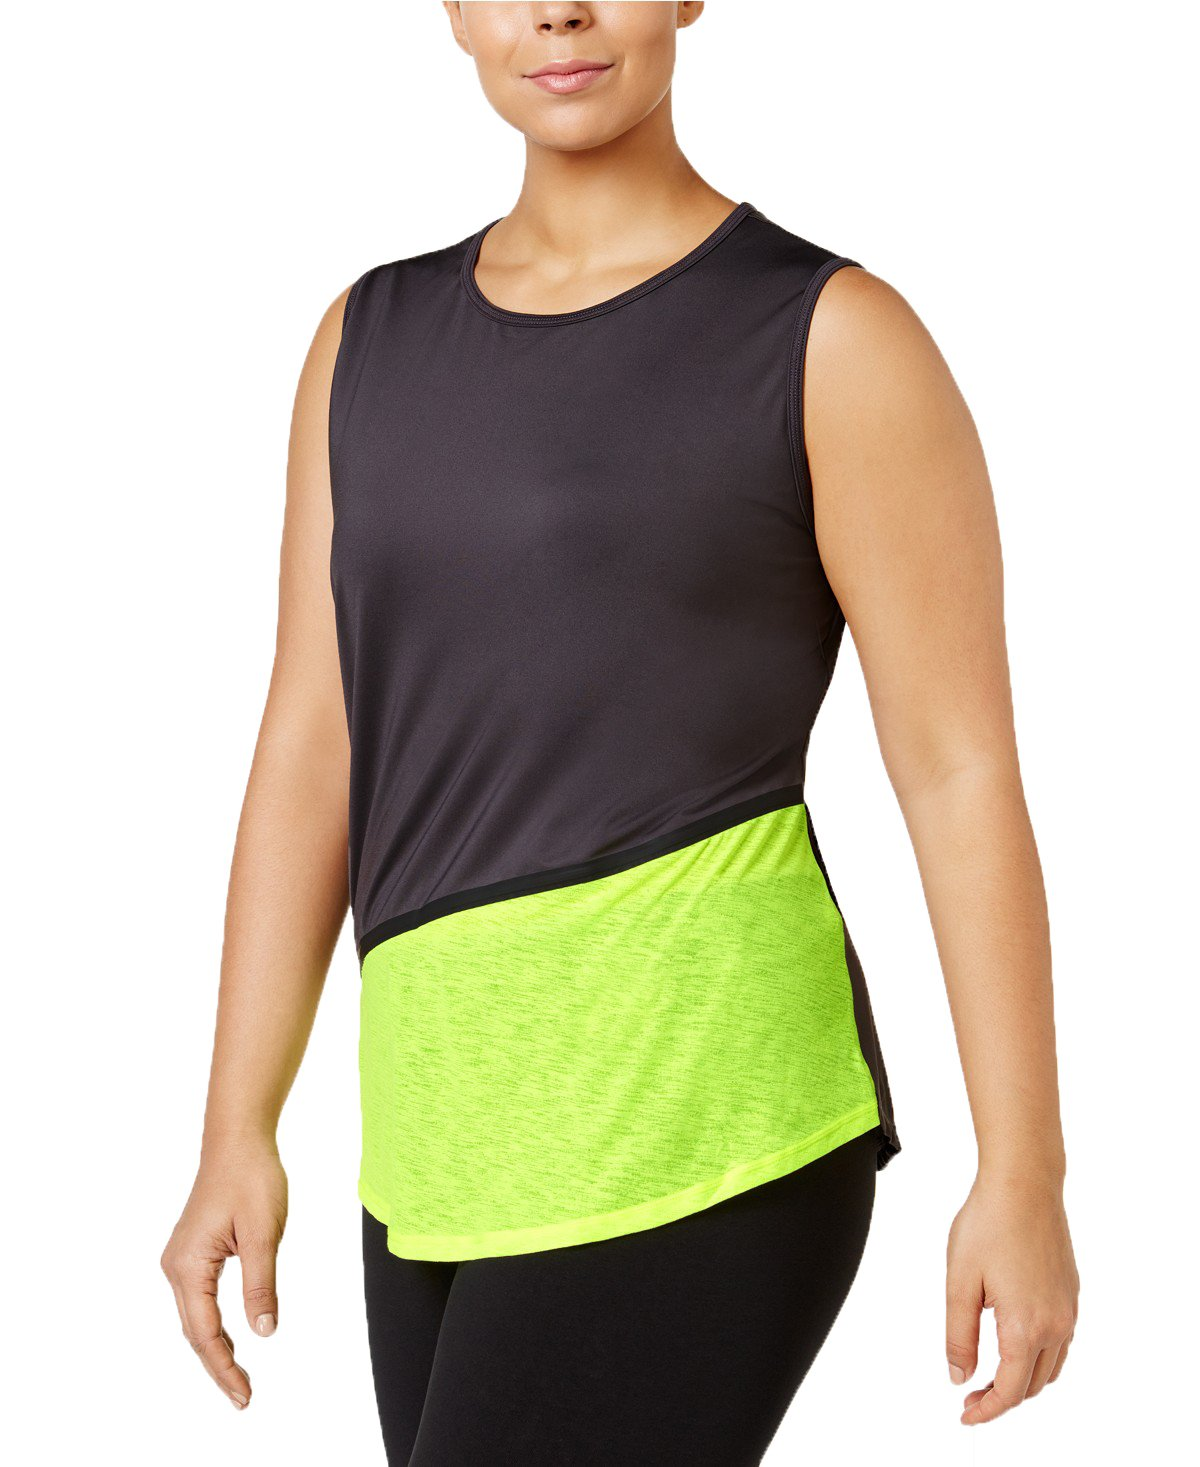 Ideology Plus Size Colorblocked Tank Top in Deep Charcoal (3X)